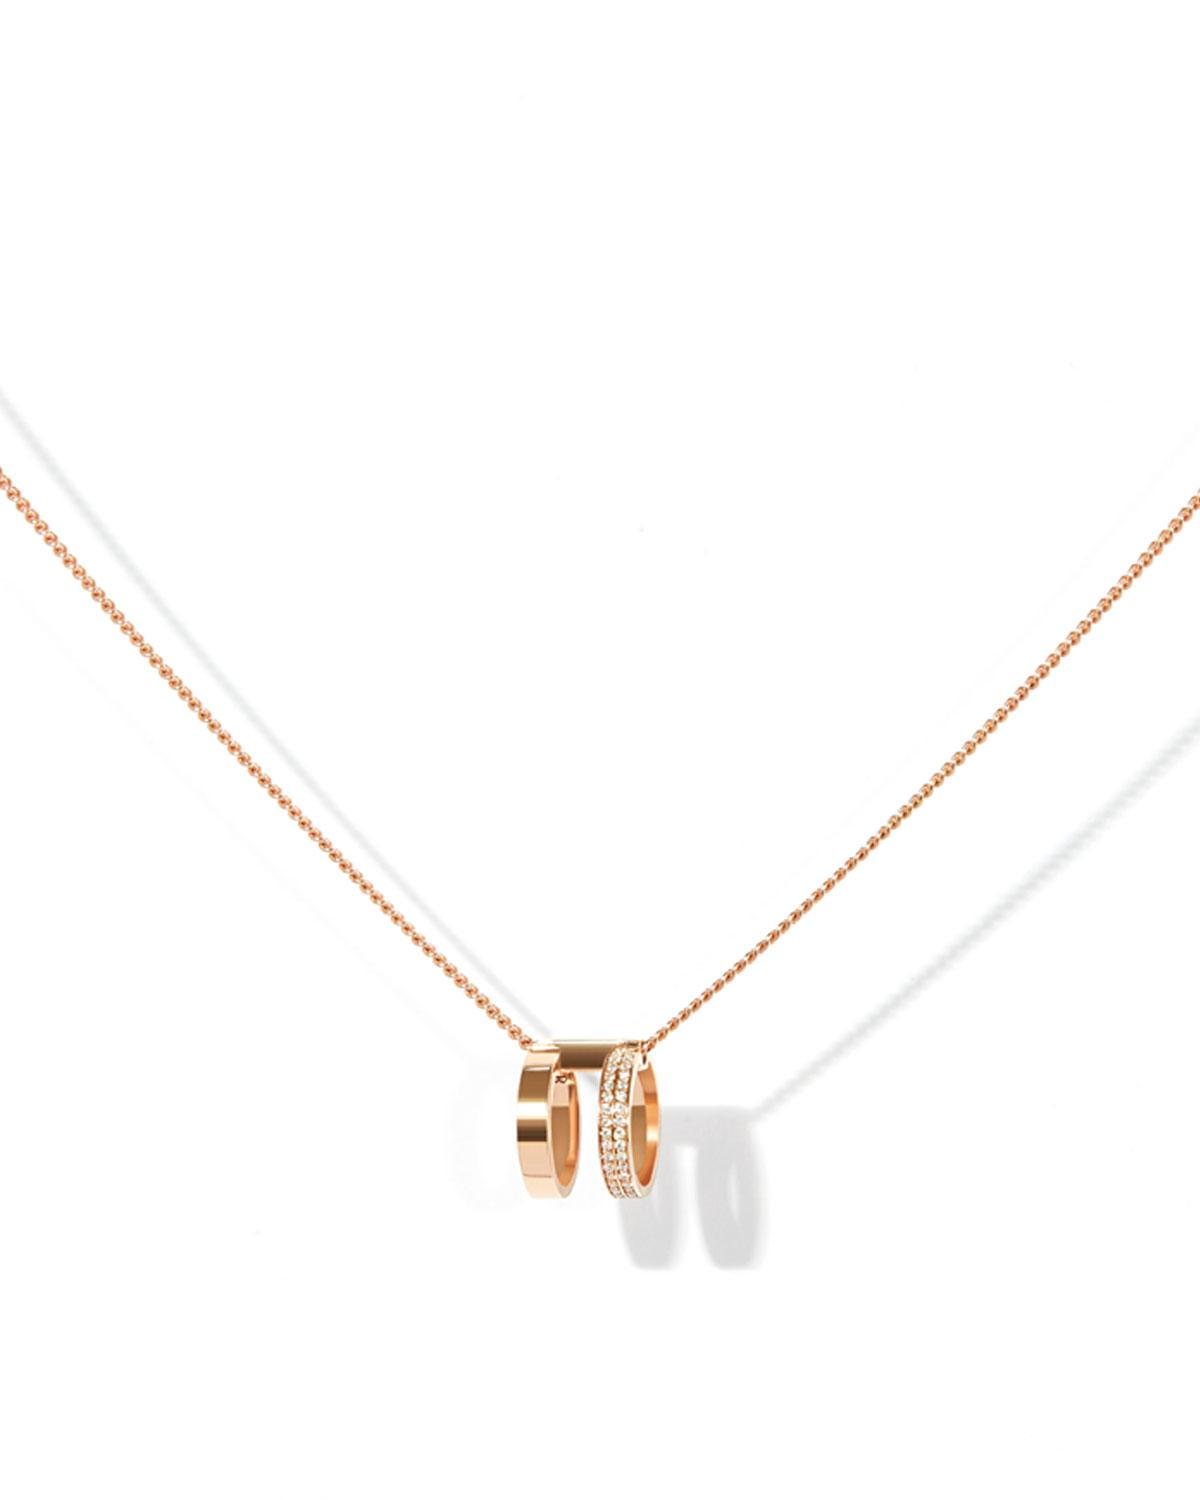 Repossi Two-Row Pendant Necklace in 18K Rose Gold LlgpnwZ